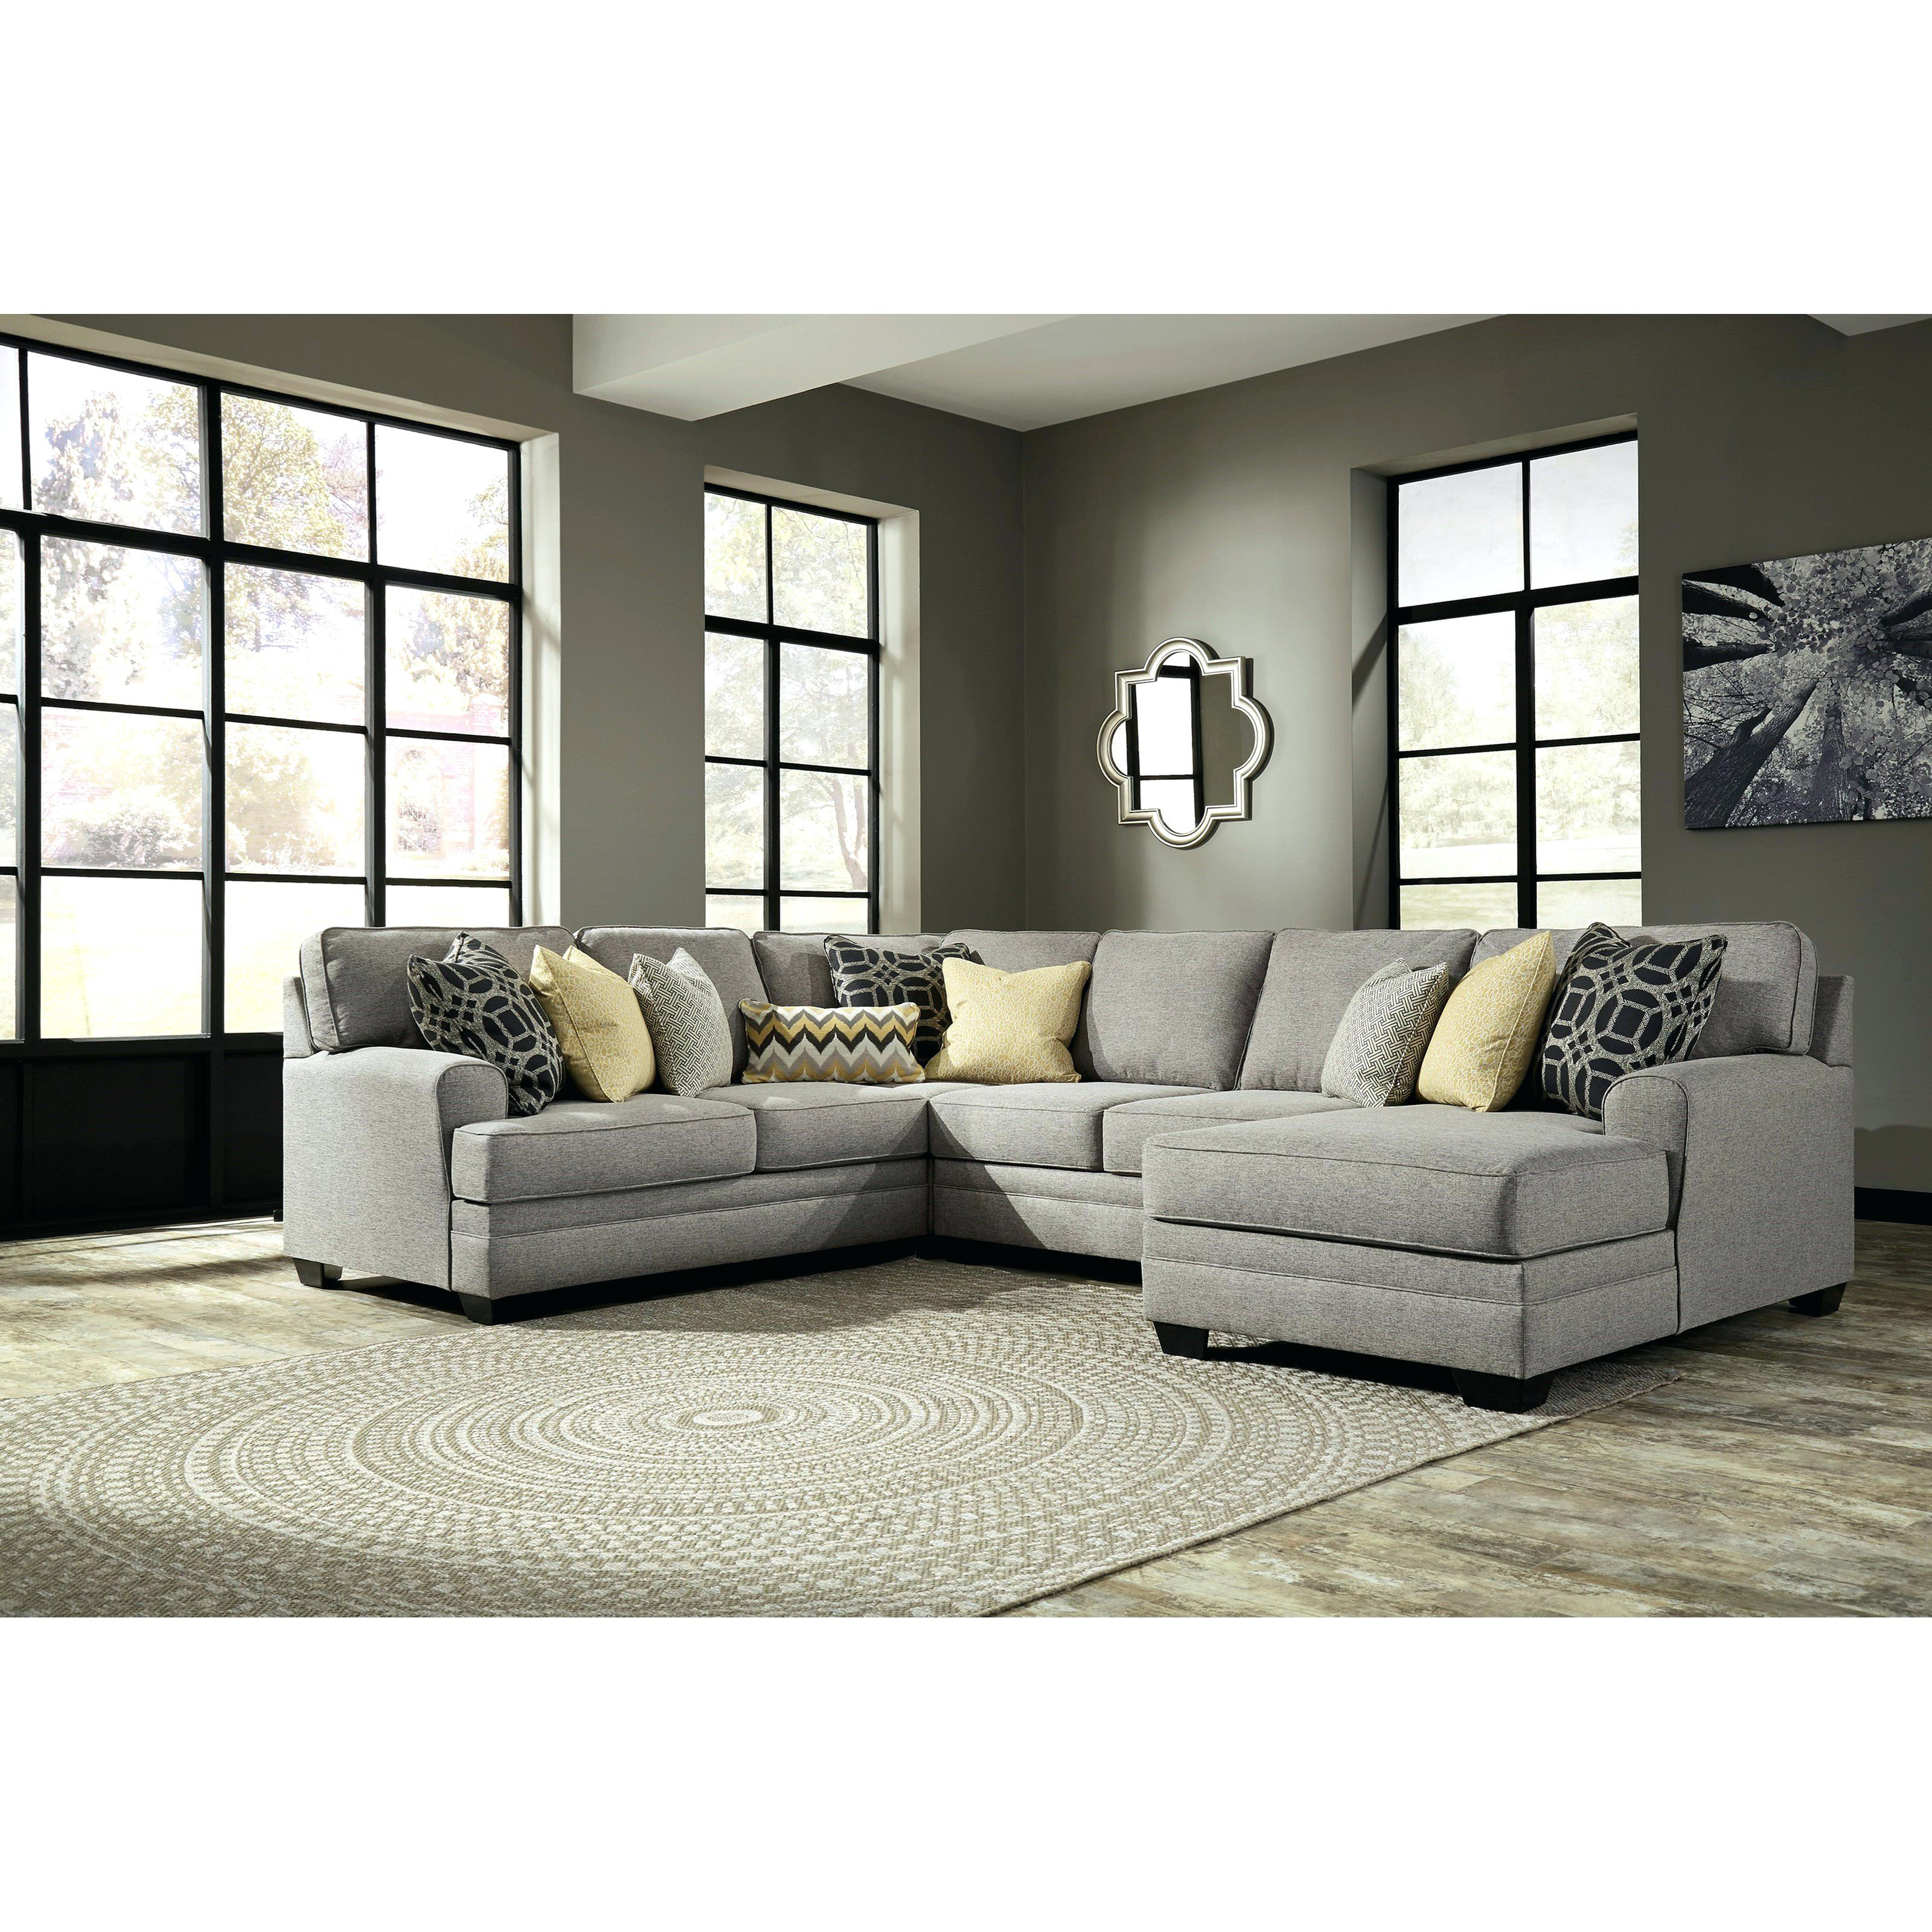 Alder 4 Piece Sectionals In Most Recent 4 Piece Sectional Couch – Formyouropinion (View 3 of 20)